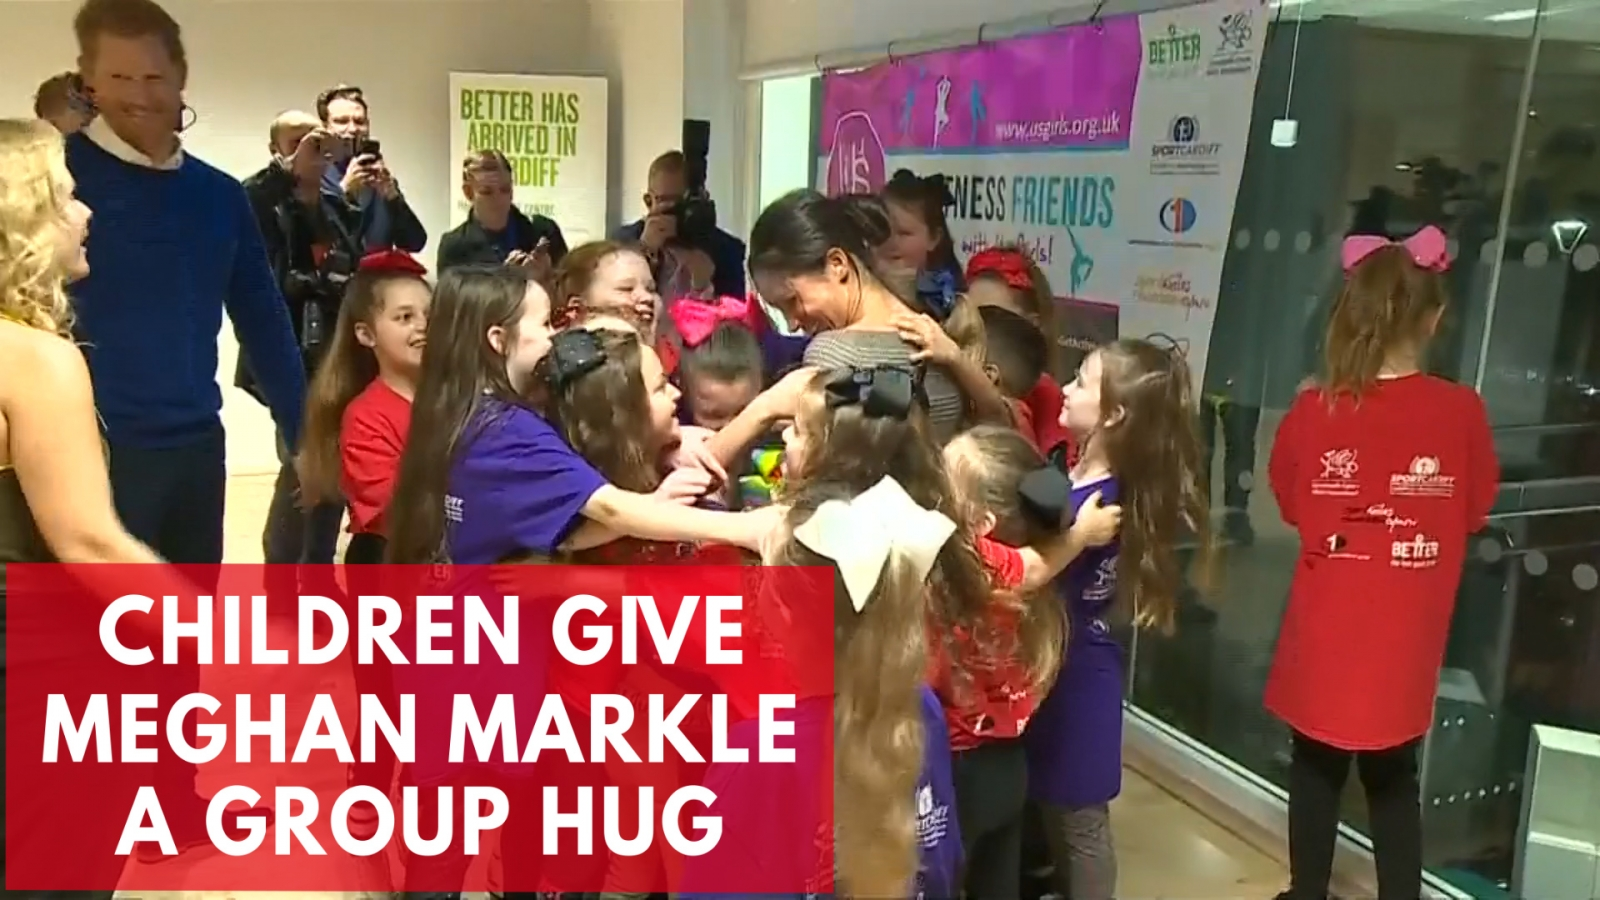 meghan-markle-receives-group-hug-from-school-children